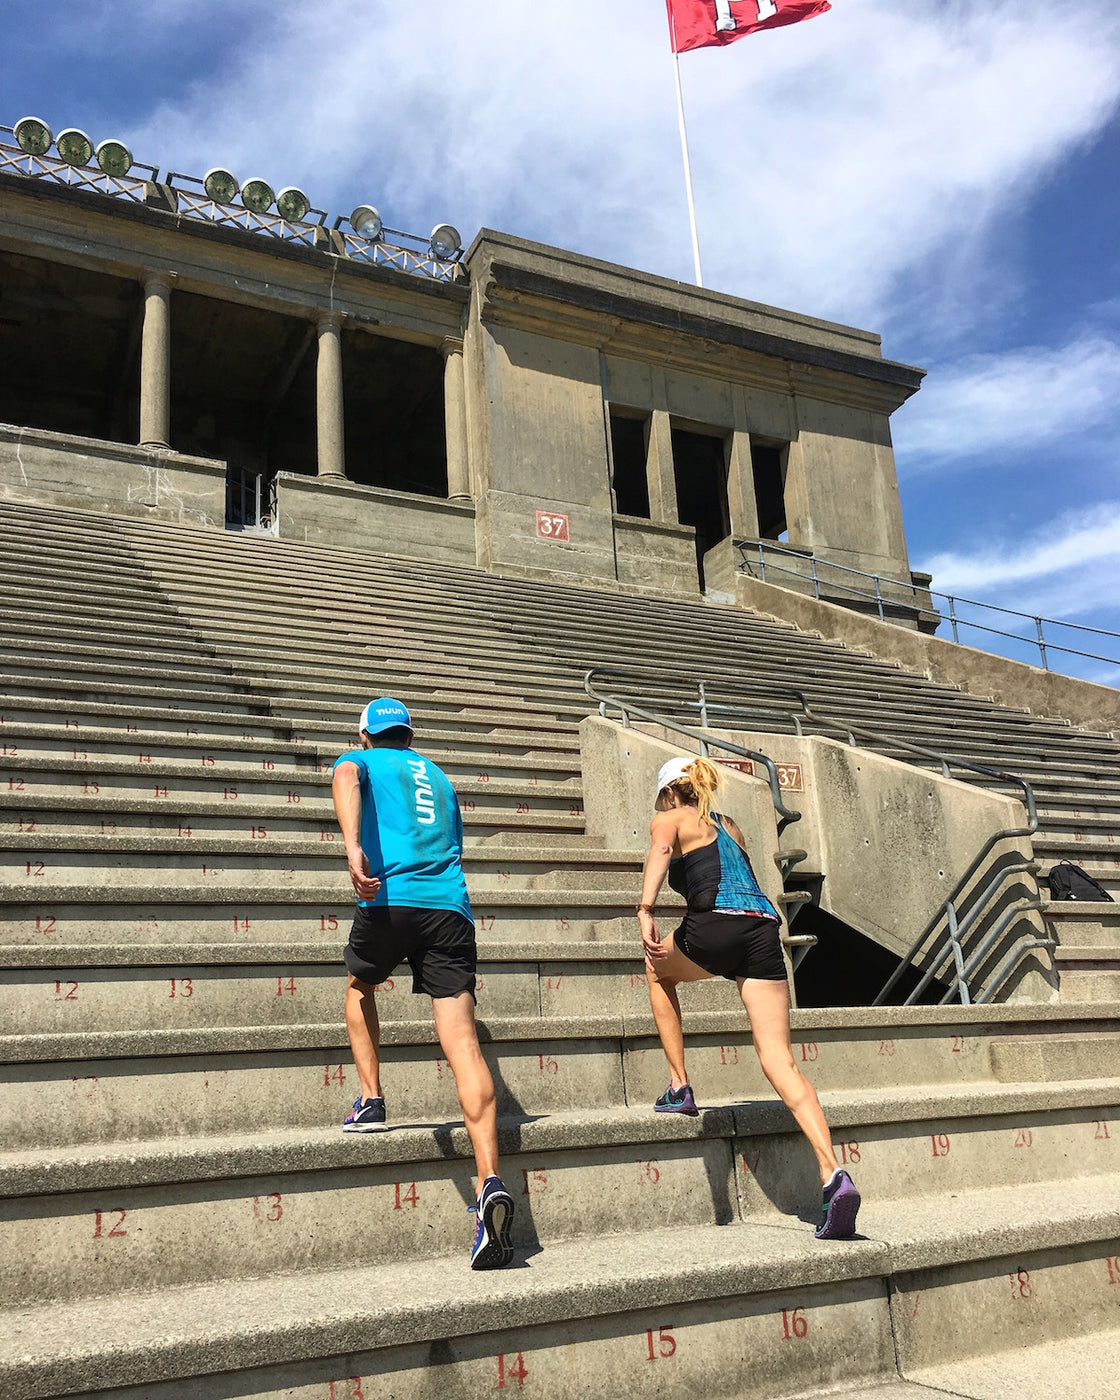 Two people doing a workout running up stairs